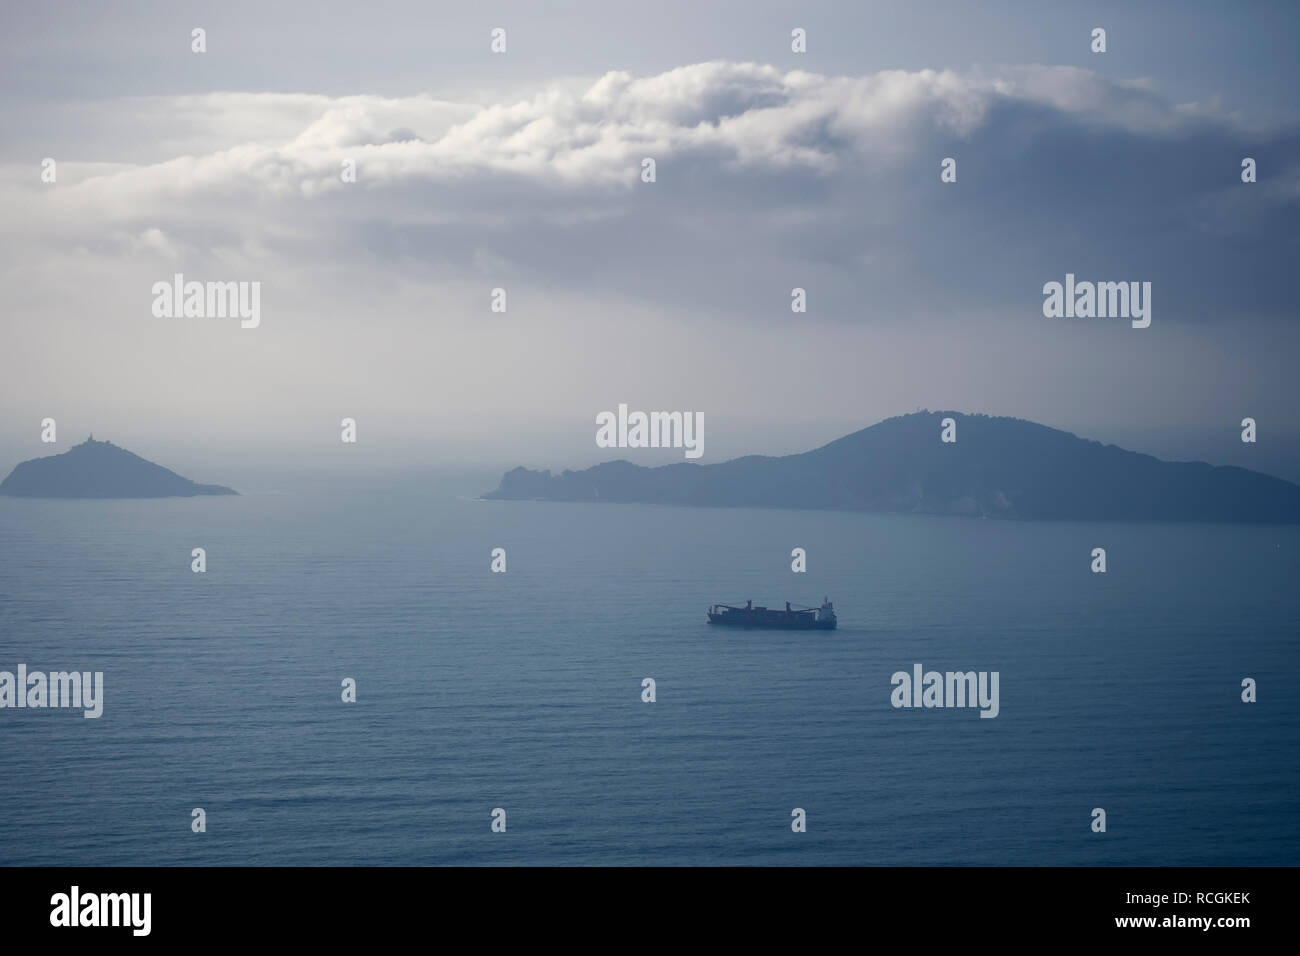 Misty evening with cargo ship, looking over the Gulf of Poets, La Spezia province, Italy. Palmaria Island visible. - Stock Image